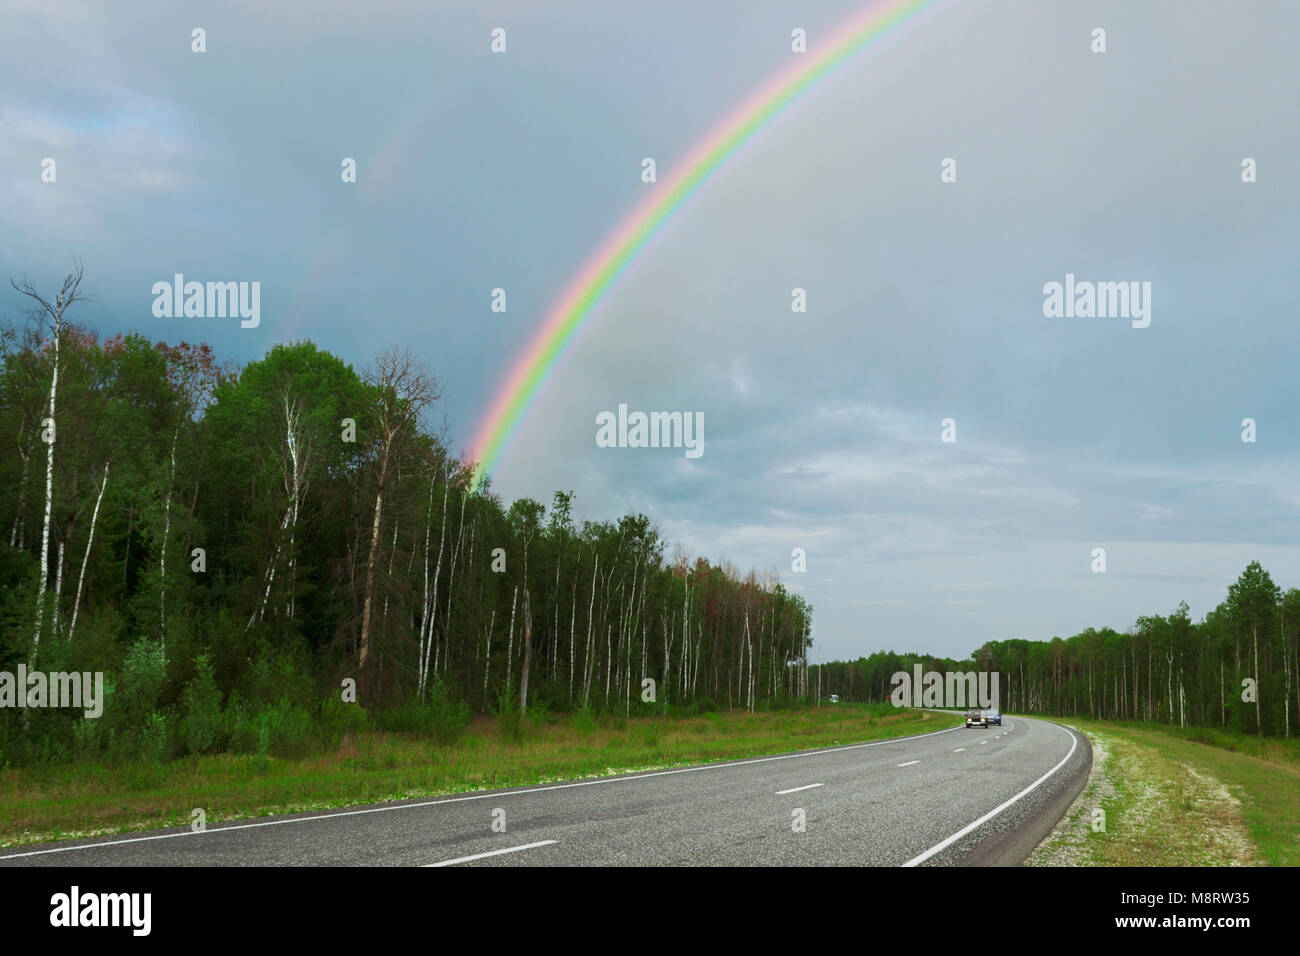 Rainbow after rain over highway in the summer Stock Photo